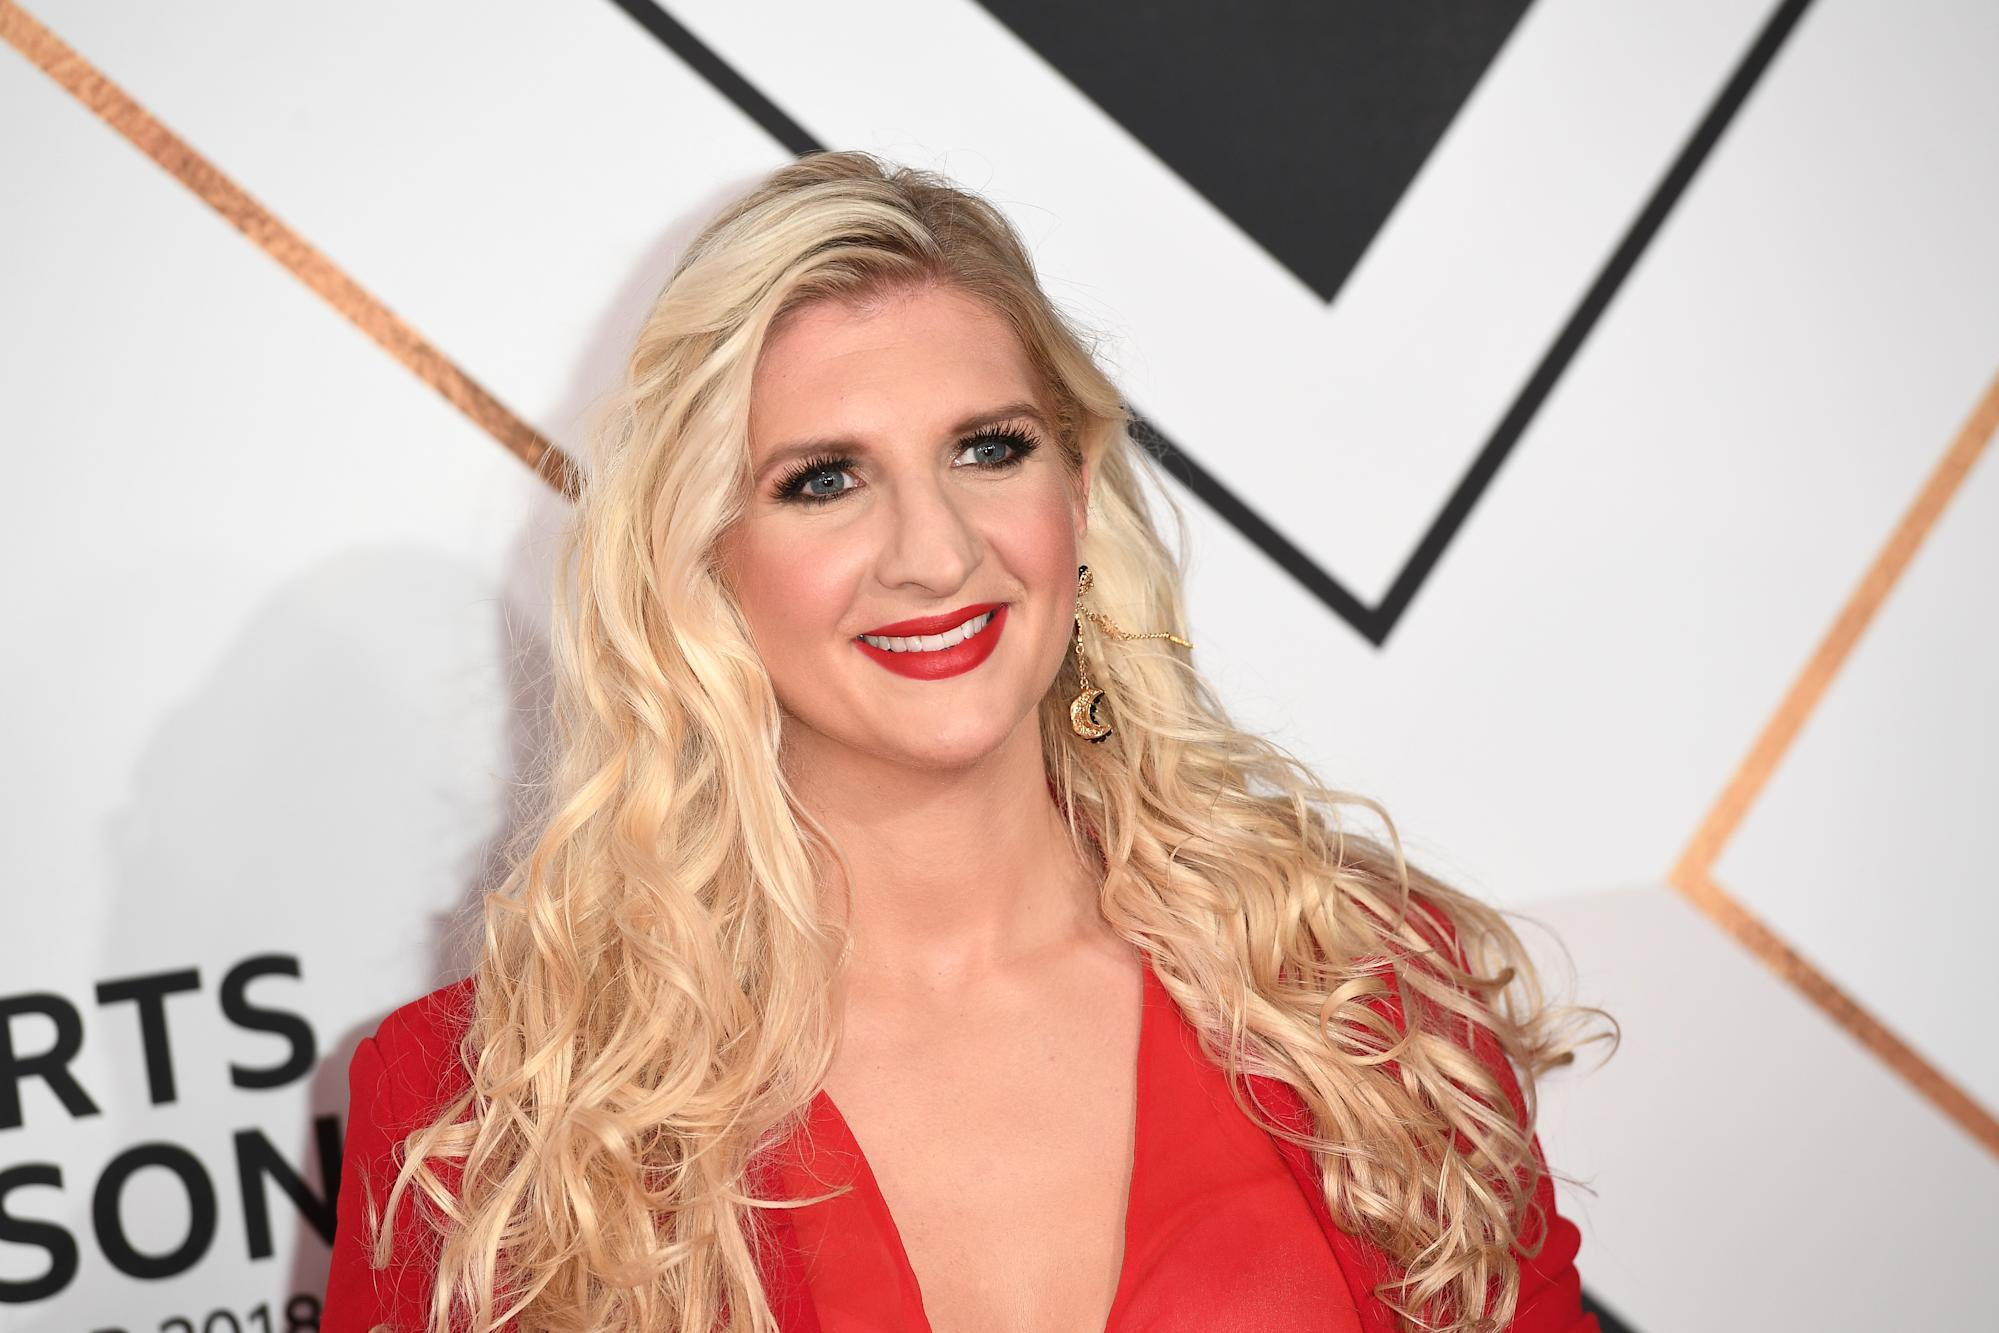 Rebecca Adlington's partner didn't know who she was when they met on dating app